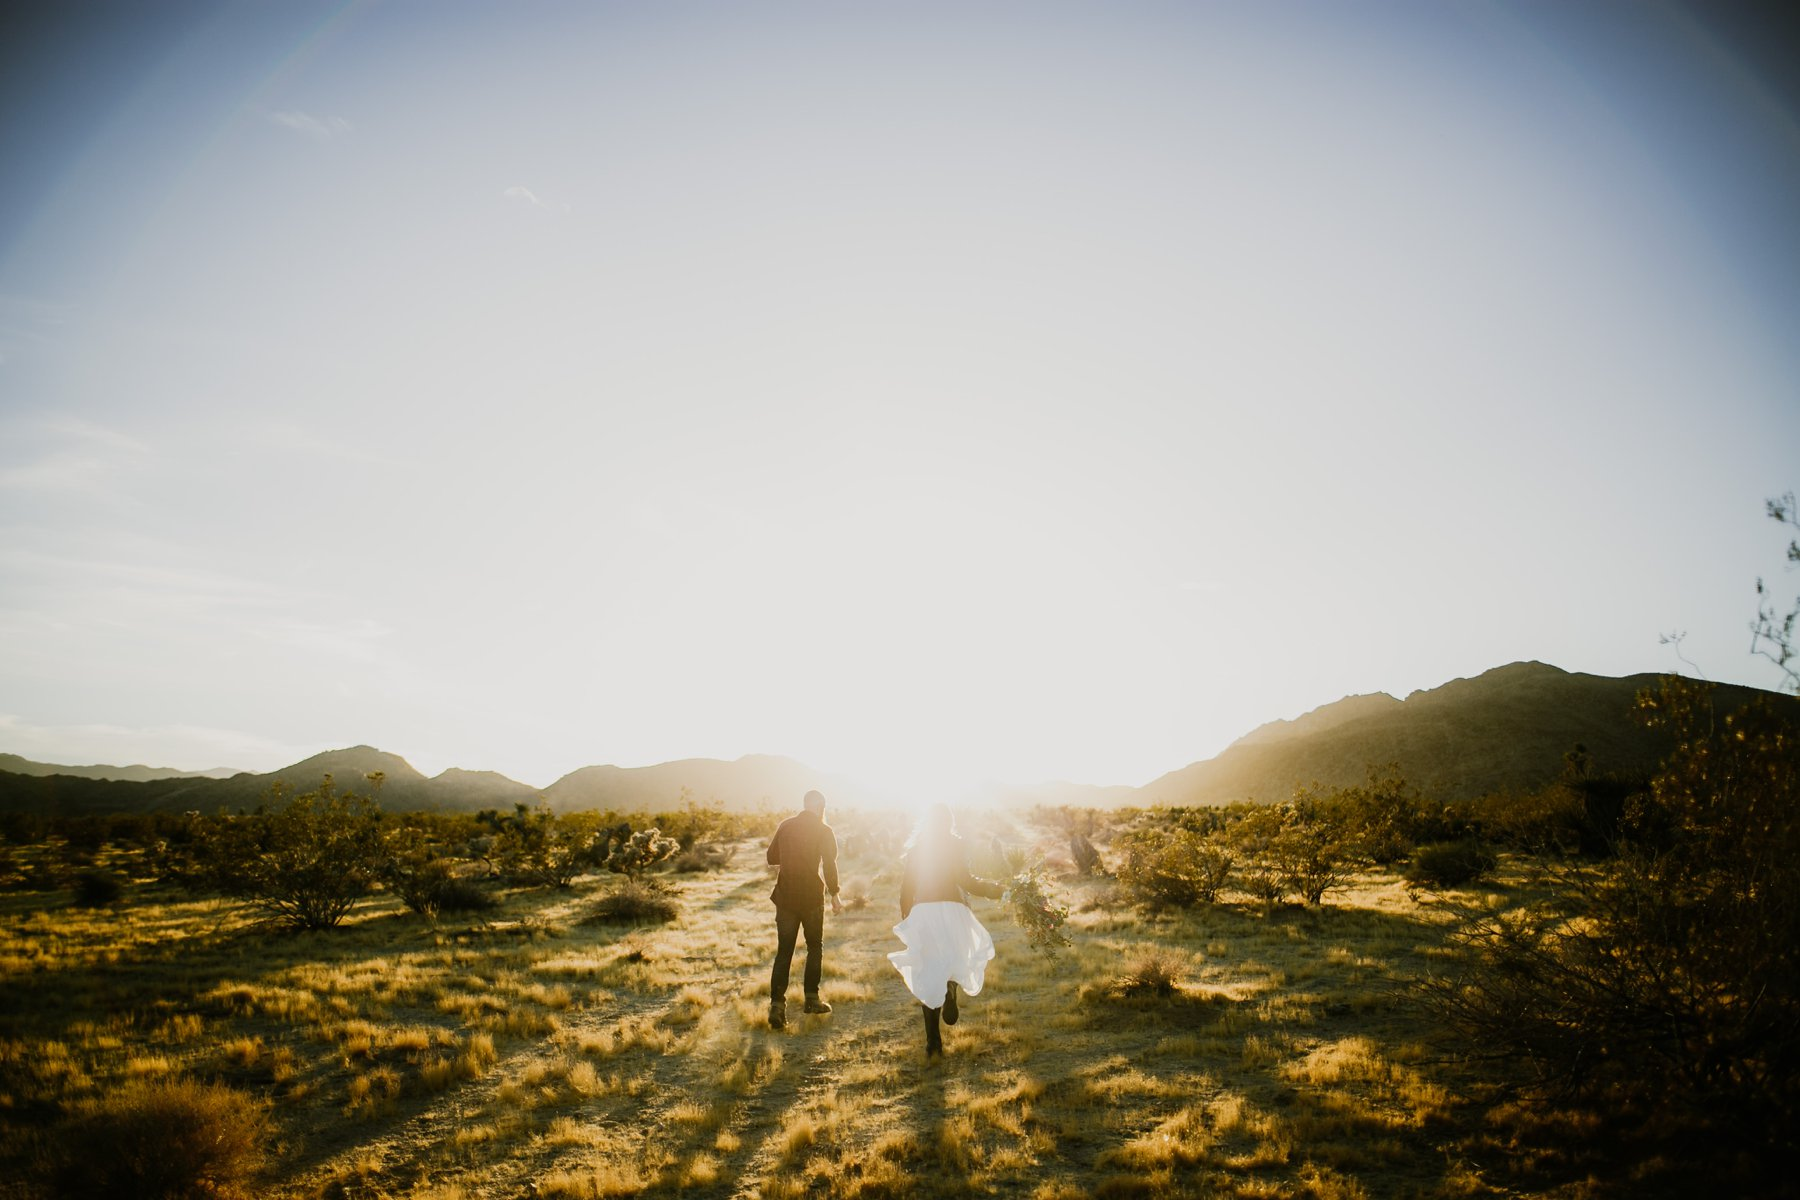 motorcycle-elopement-in-joshua-tree_0016.jpg